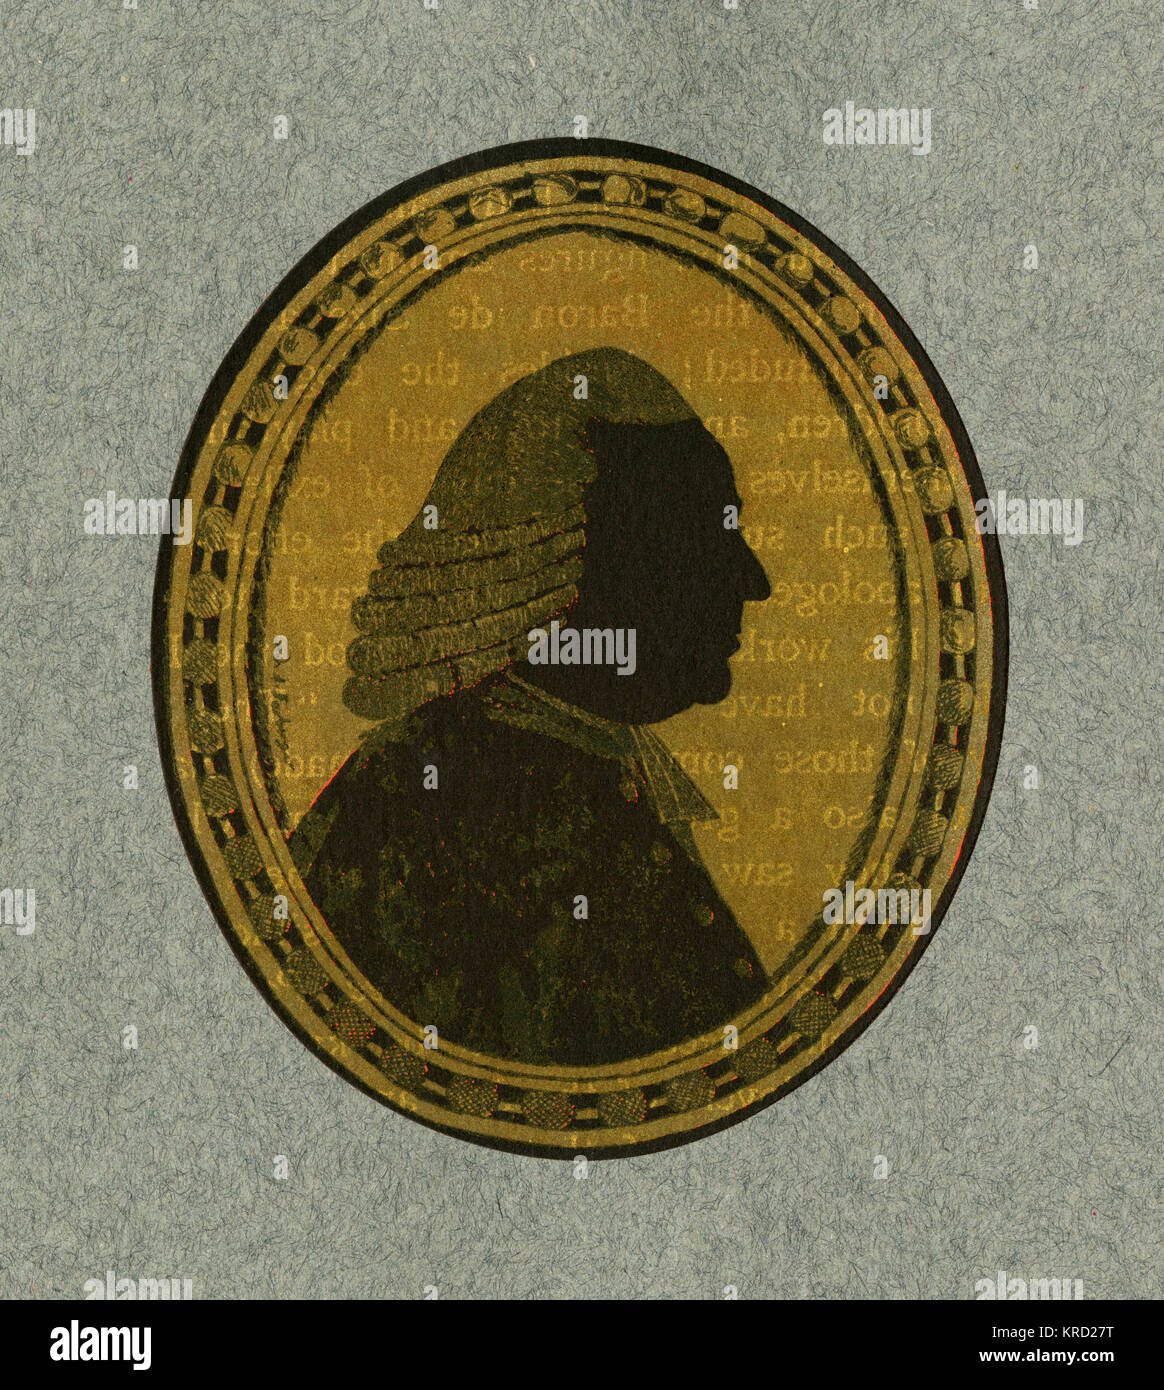 Silhouette portrait on glass by A. Forberger of Lord Mansfield.  William Murray, 1st Earl Mansfield (1705 - 1793) - Stock Image